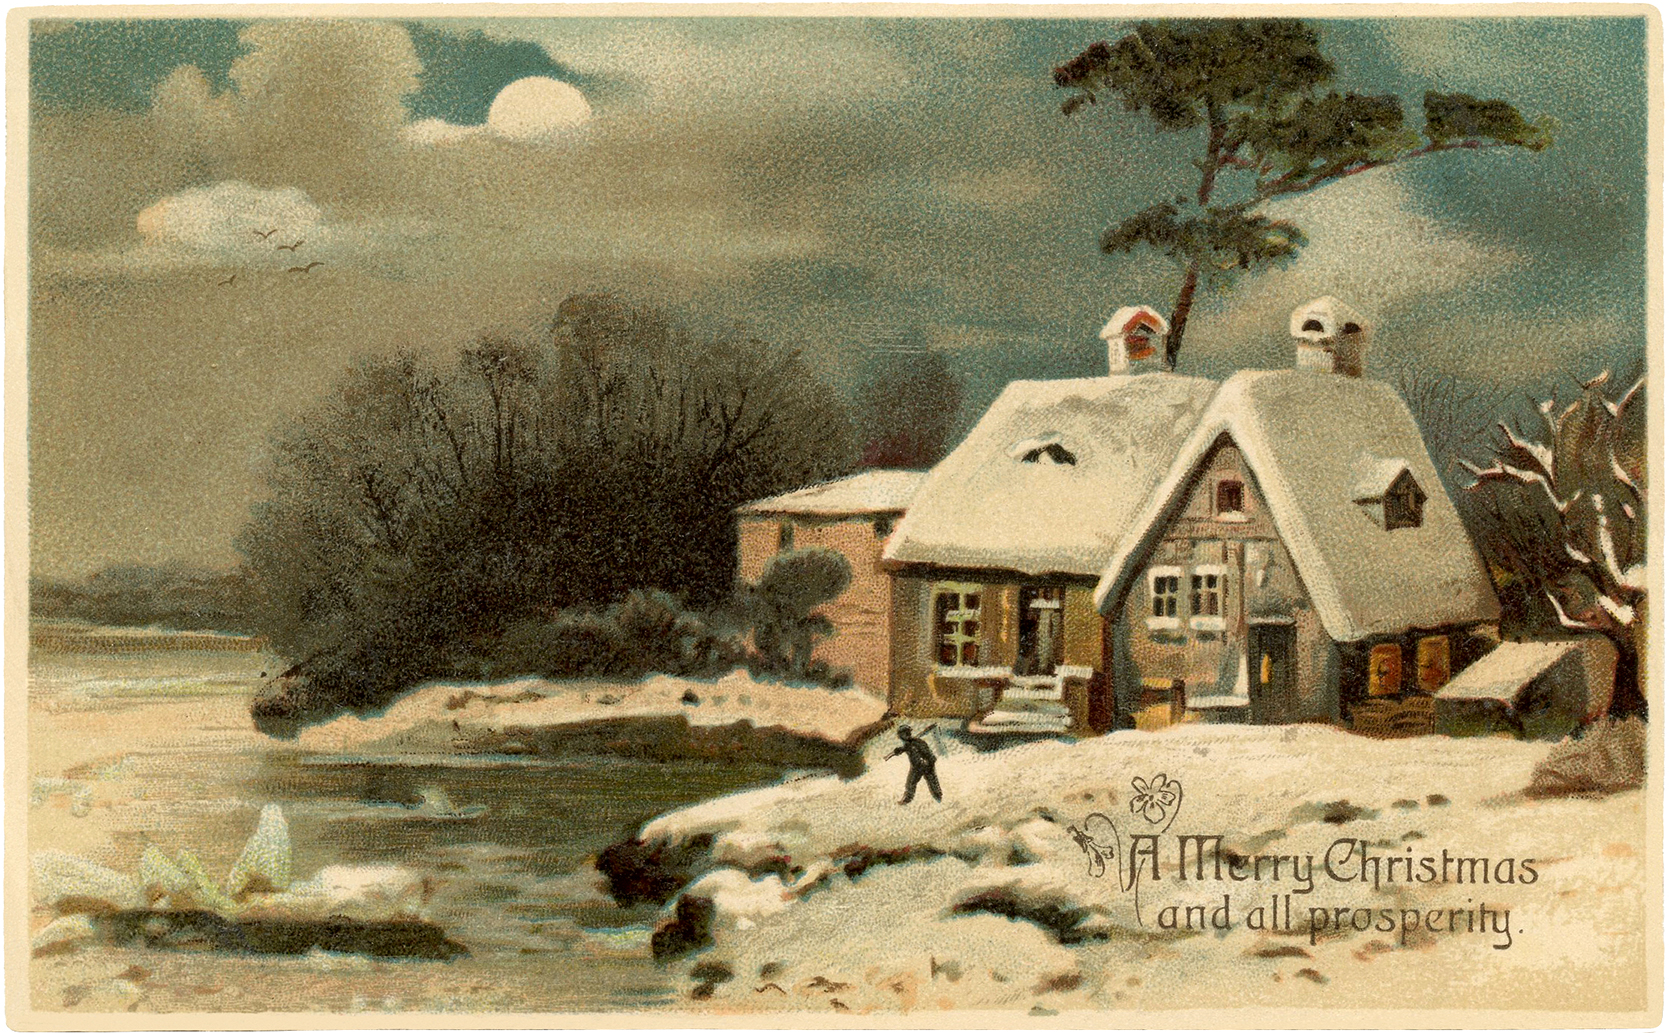 Moving Falling Snow Wallpaper Pretty Vintage Christmas Cottage Image The Graphics Fairy